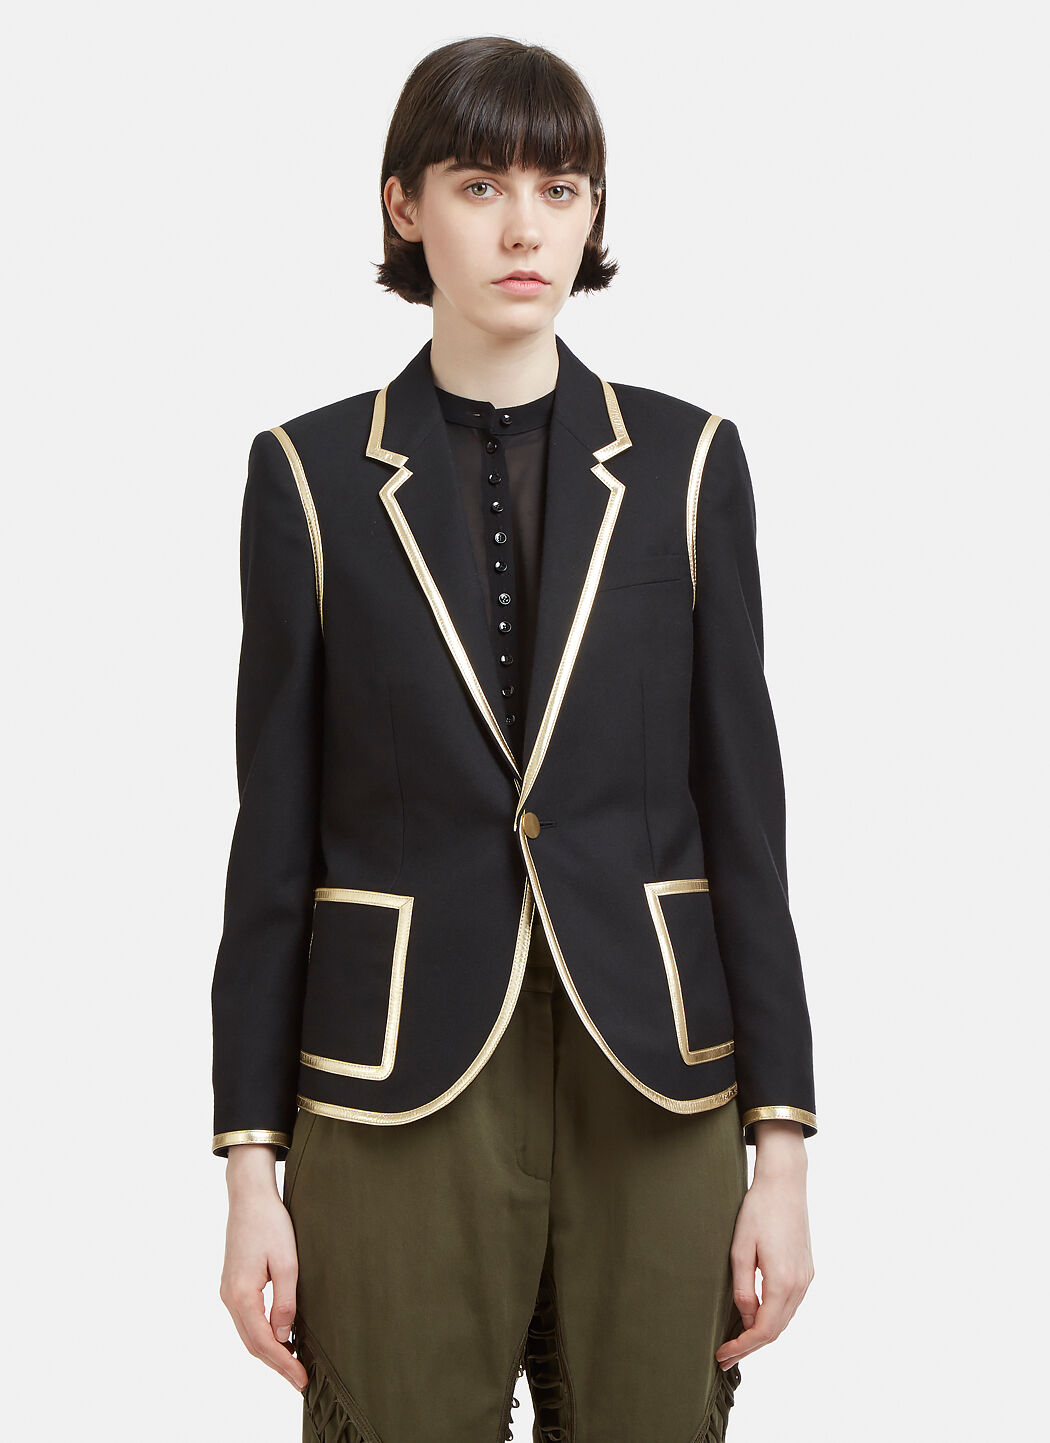 Gold Edge Jacket Saint Laurent Outlet Online Clearance Top Quality New Style sDb2fO7gS